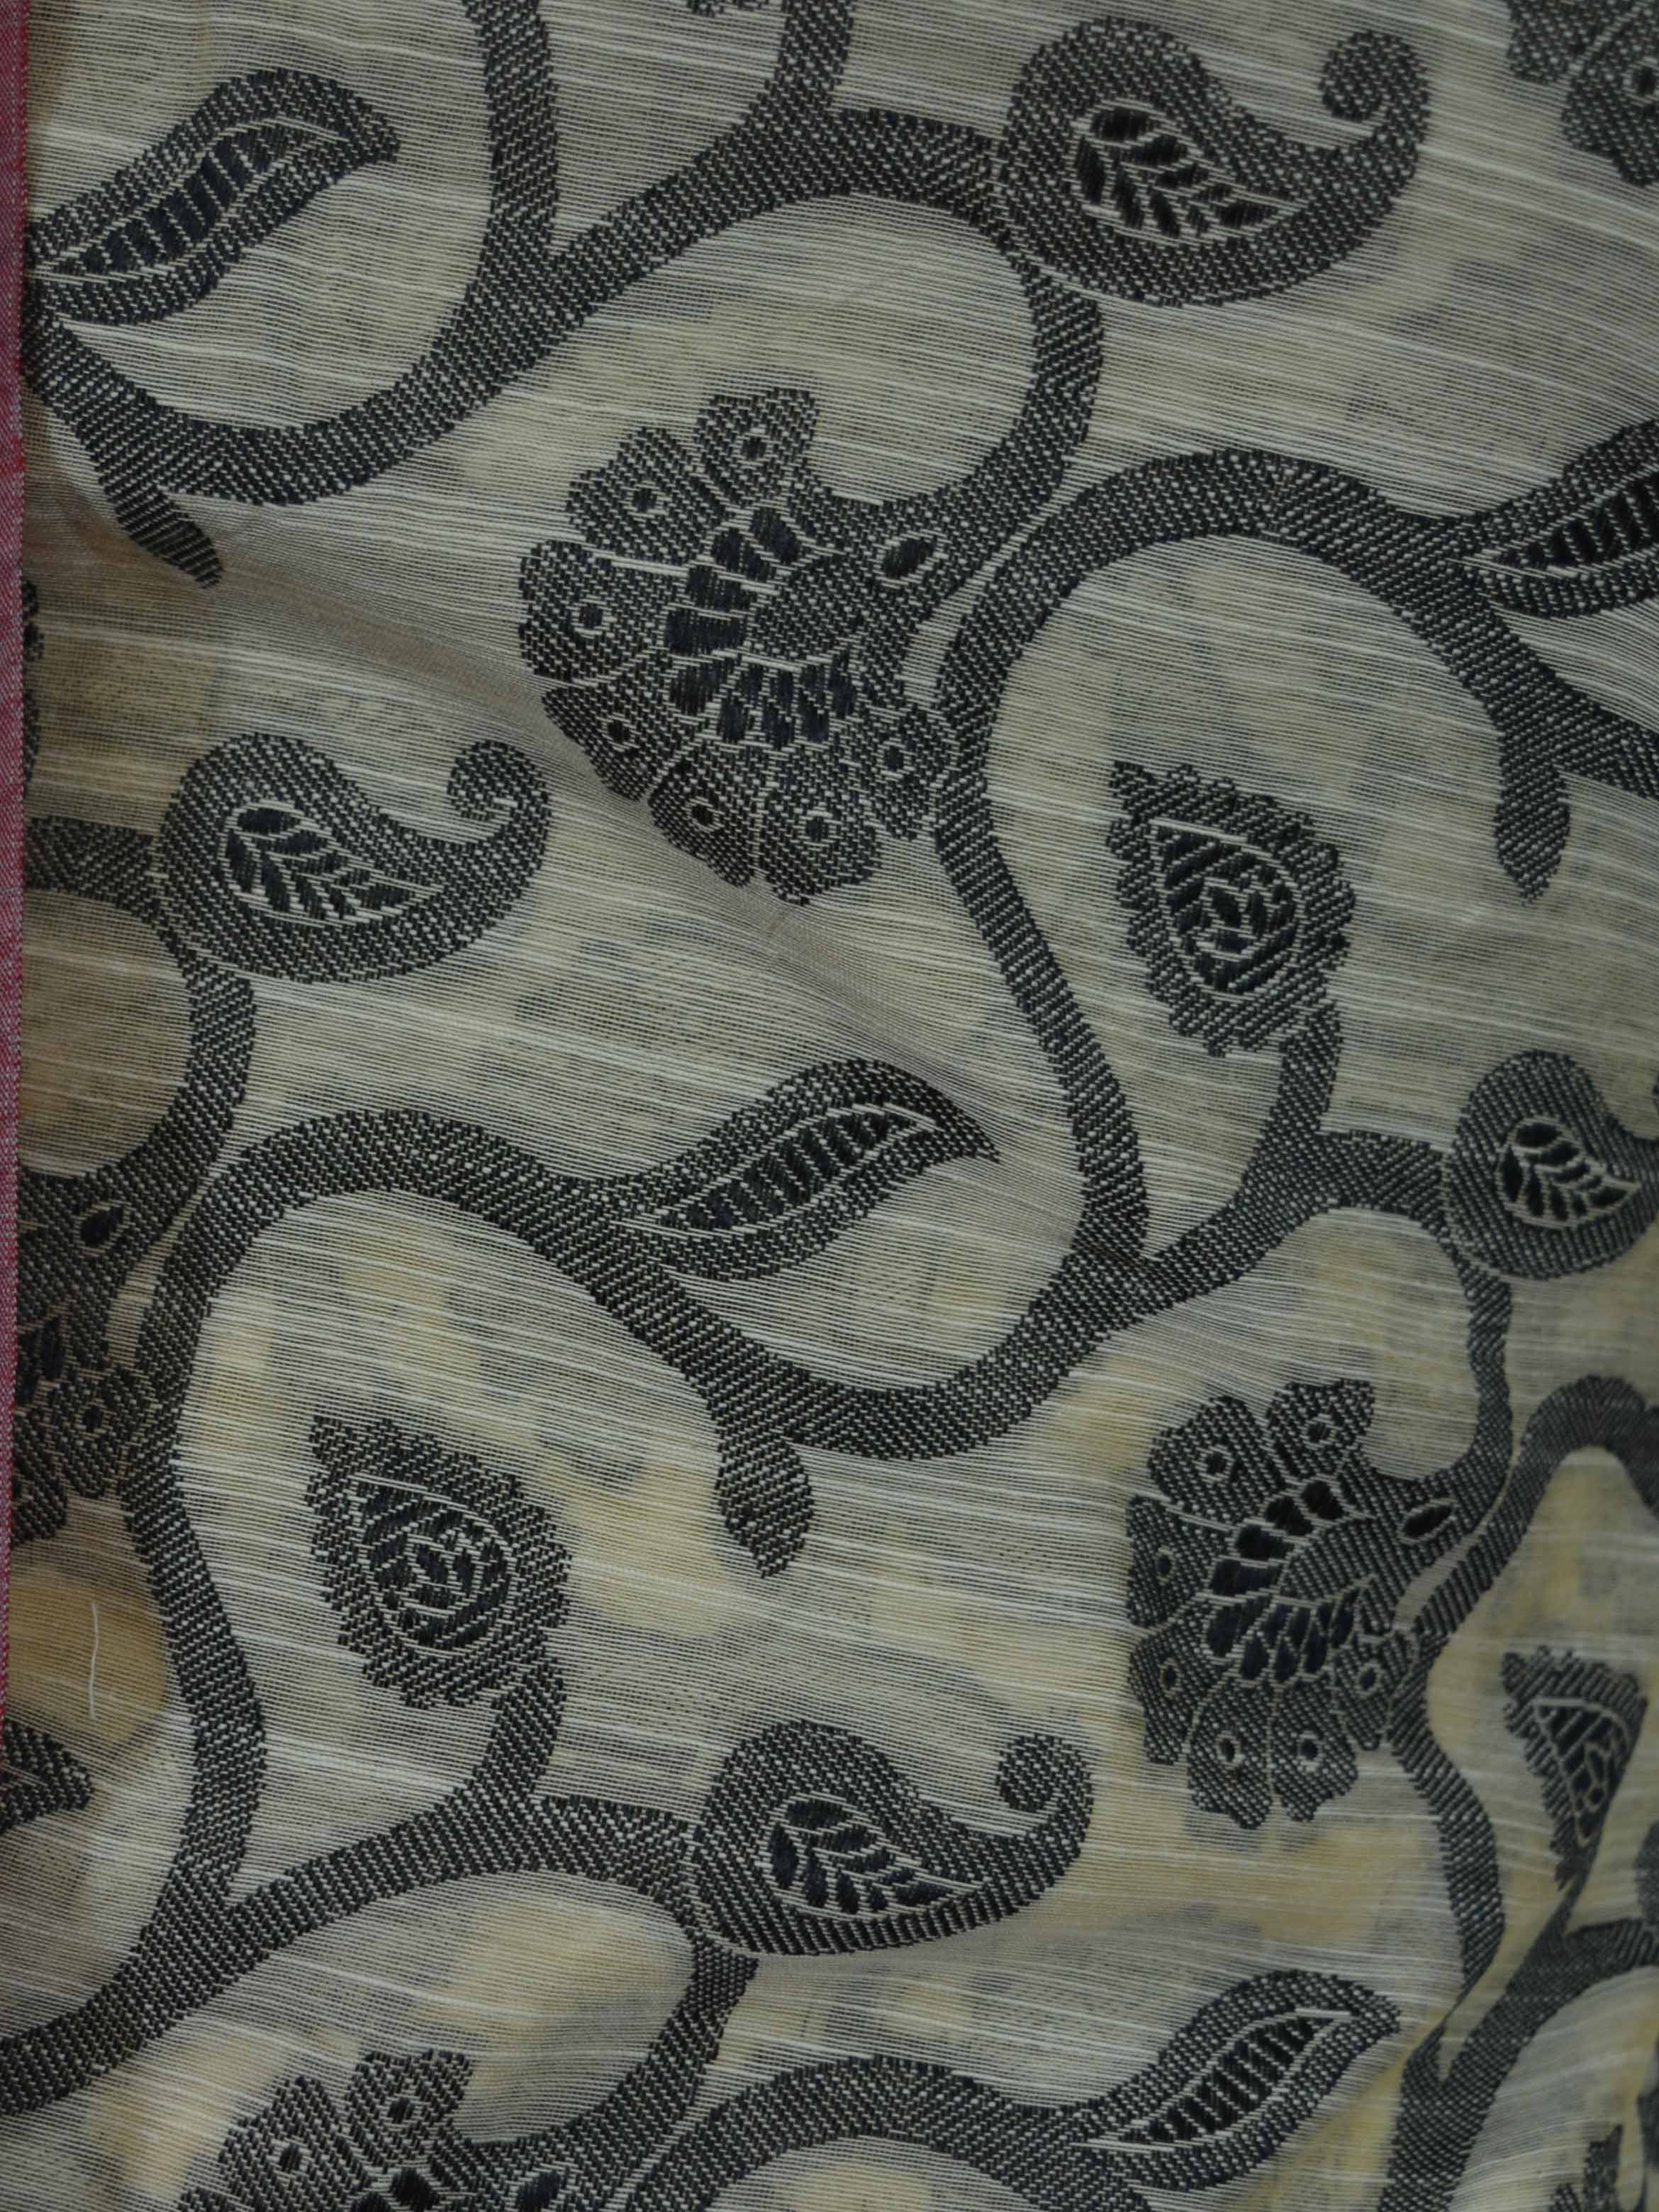 Banarasee/Banarasi Salwar Kameez Soft Cotton Resham Woven Fabric With Black Jaal Design-Beige